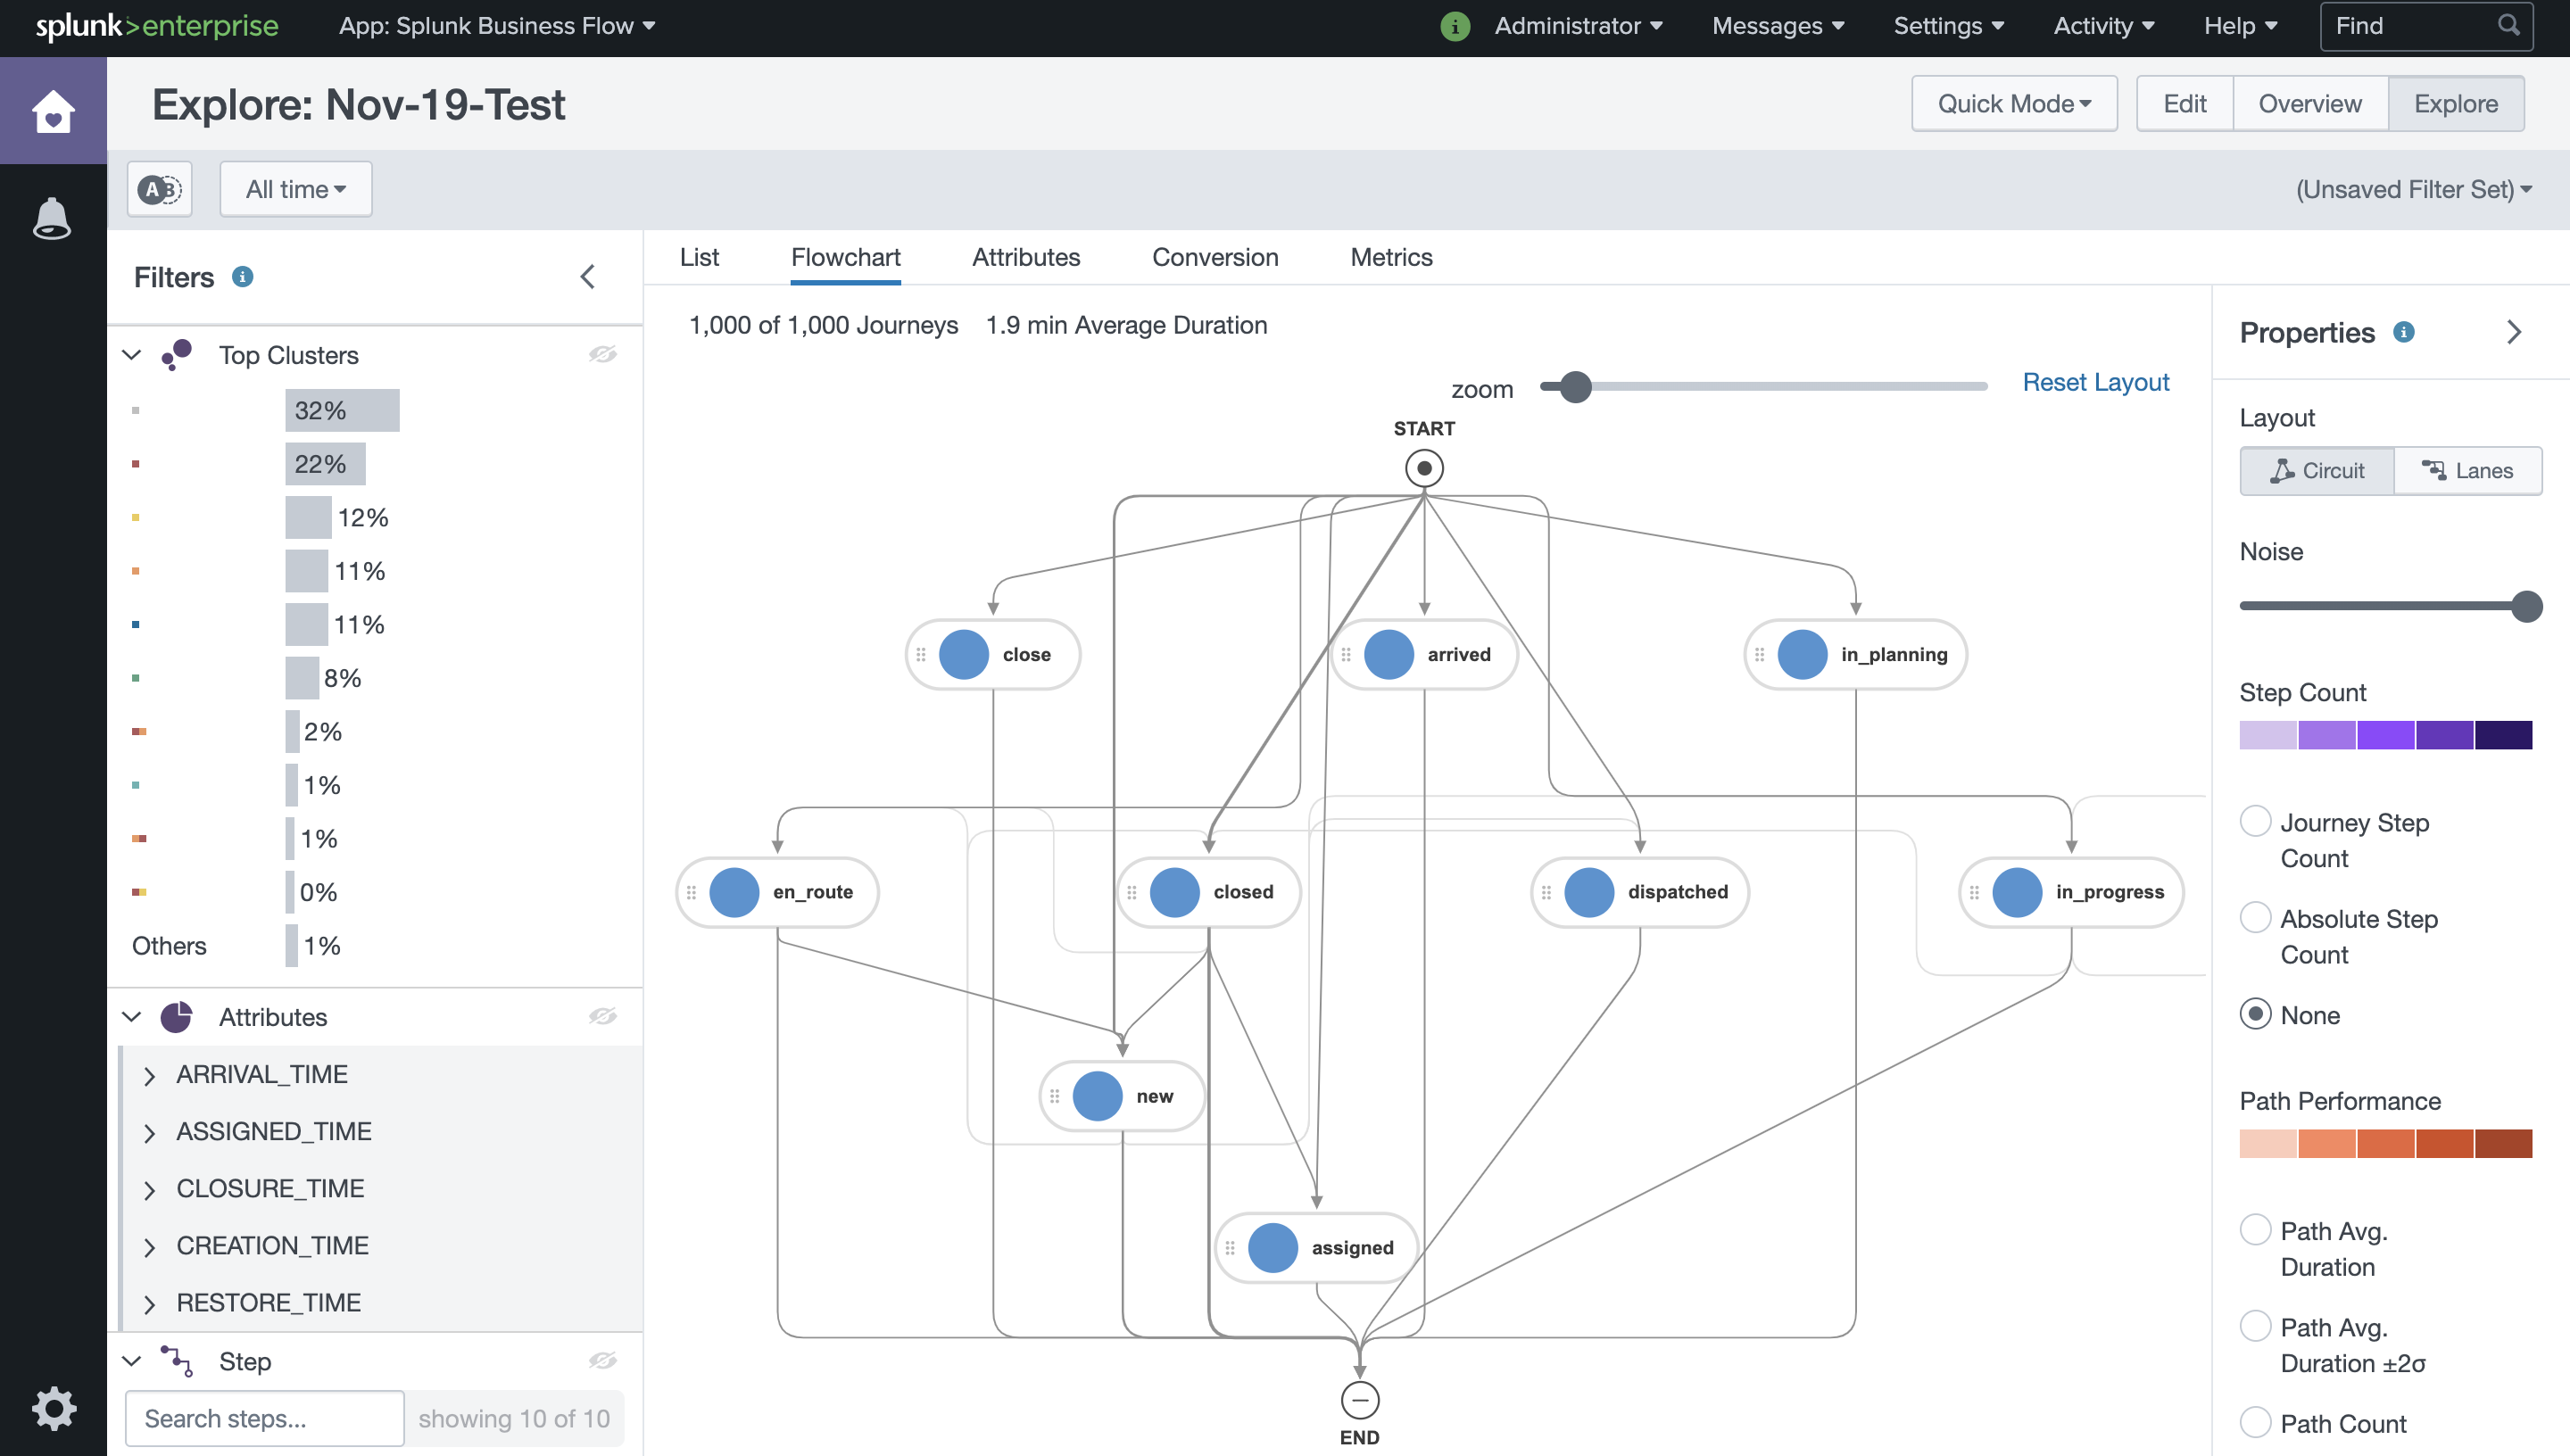 App Splunk Business Flow